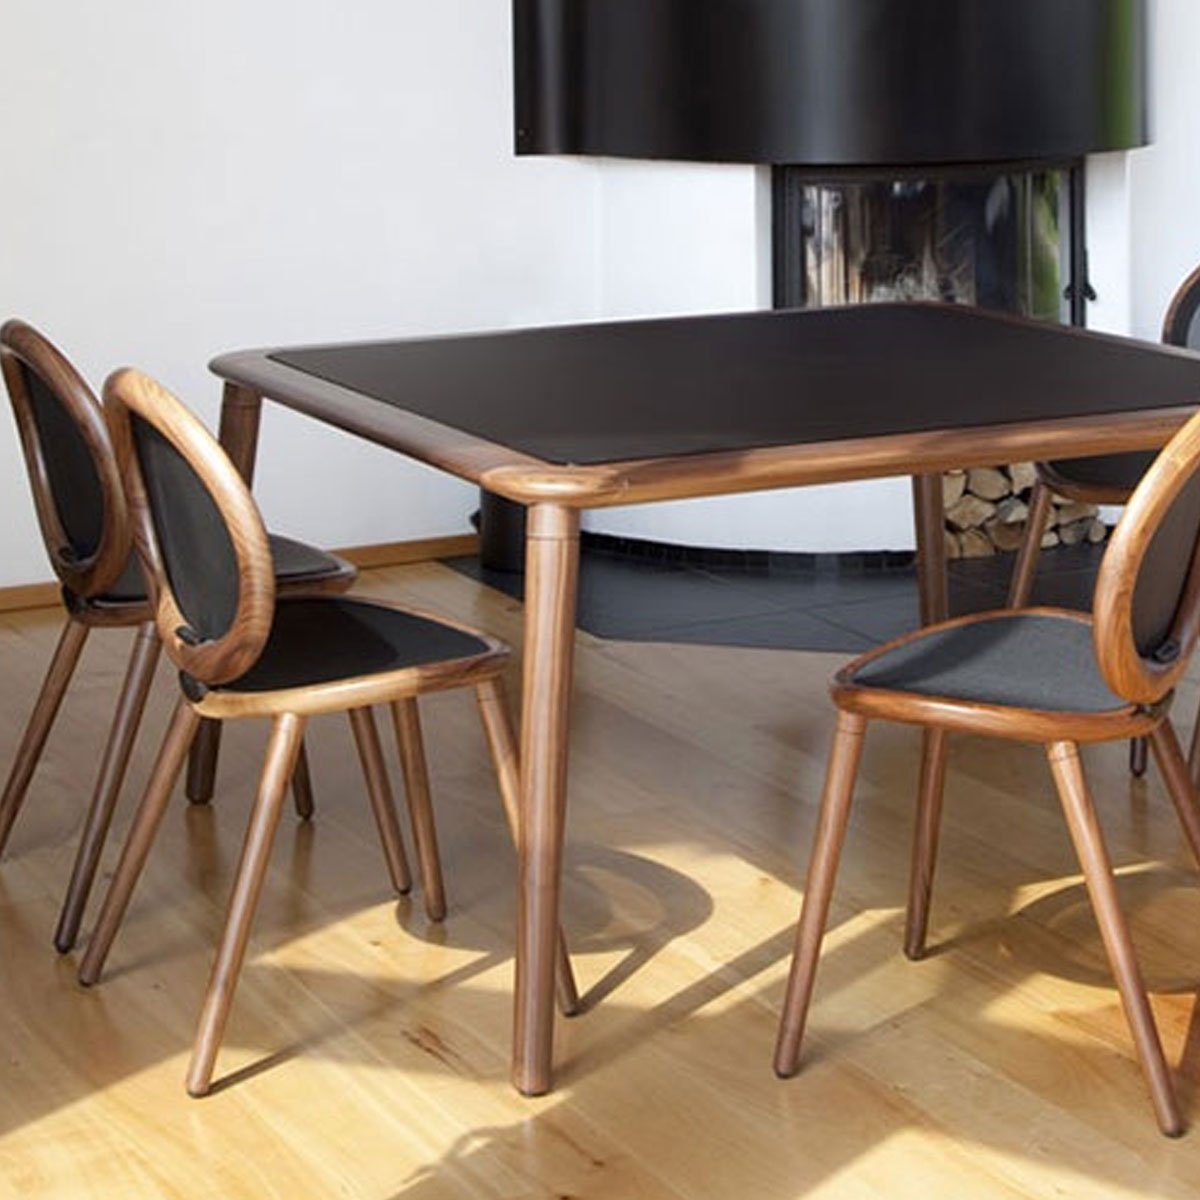 Jonathan - wooden dining table with Glass top - Klarity ...